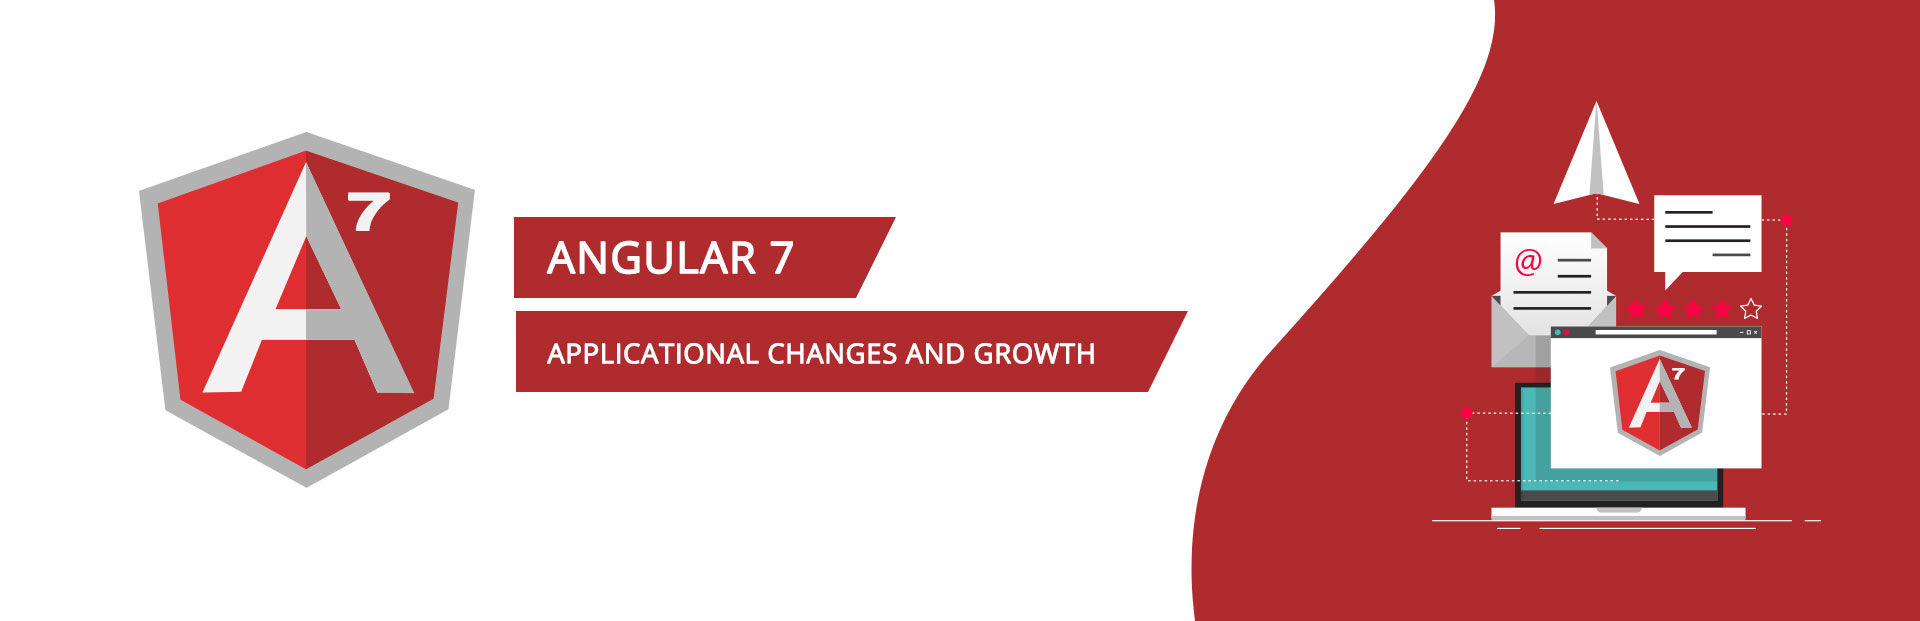 Angular 7: Applicational Changes and Growth